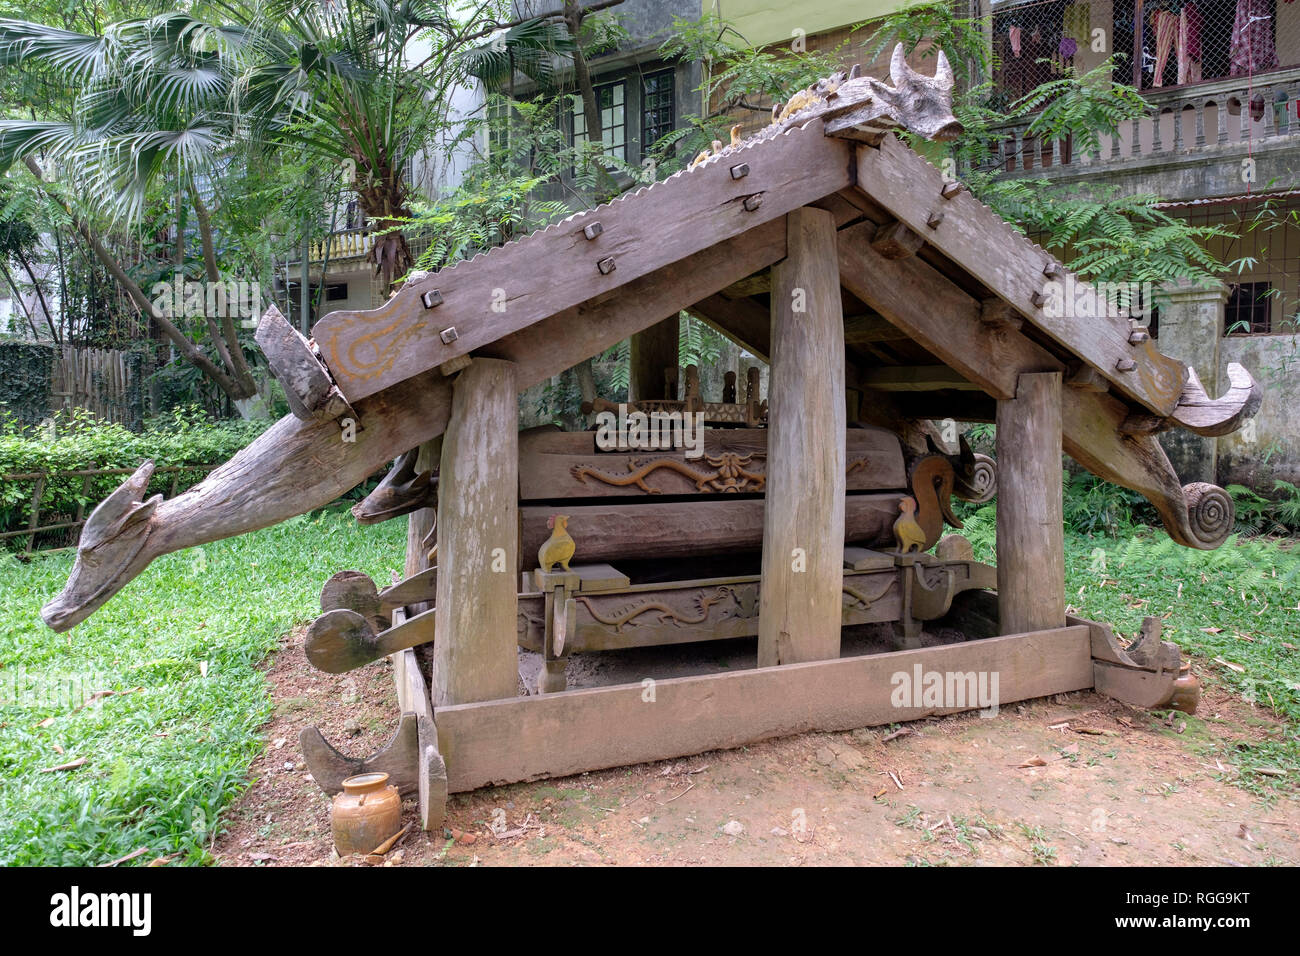 Cotu tomb at the Vietnam Museum of Ethnology, Hanoi, Vietnam, Asia - Stock Image